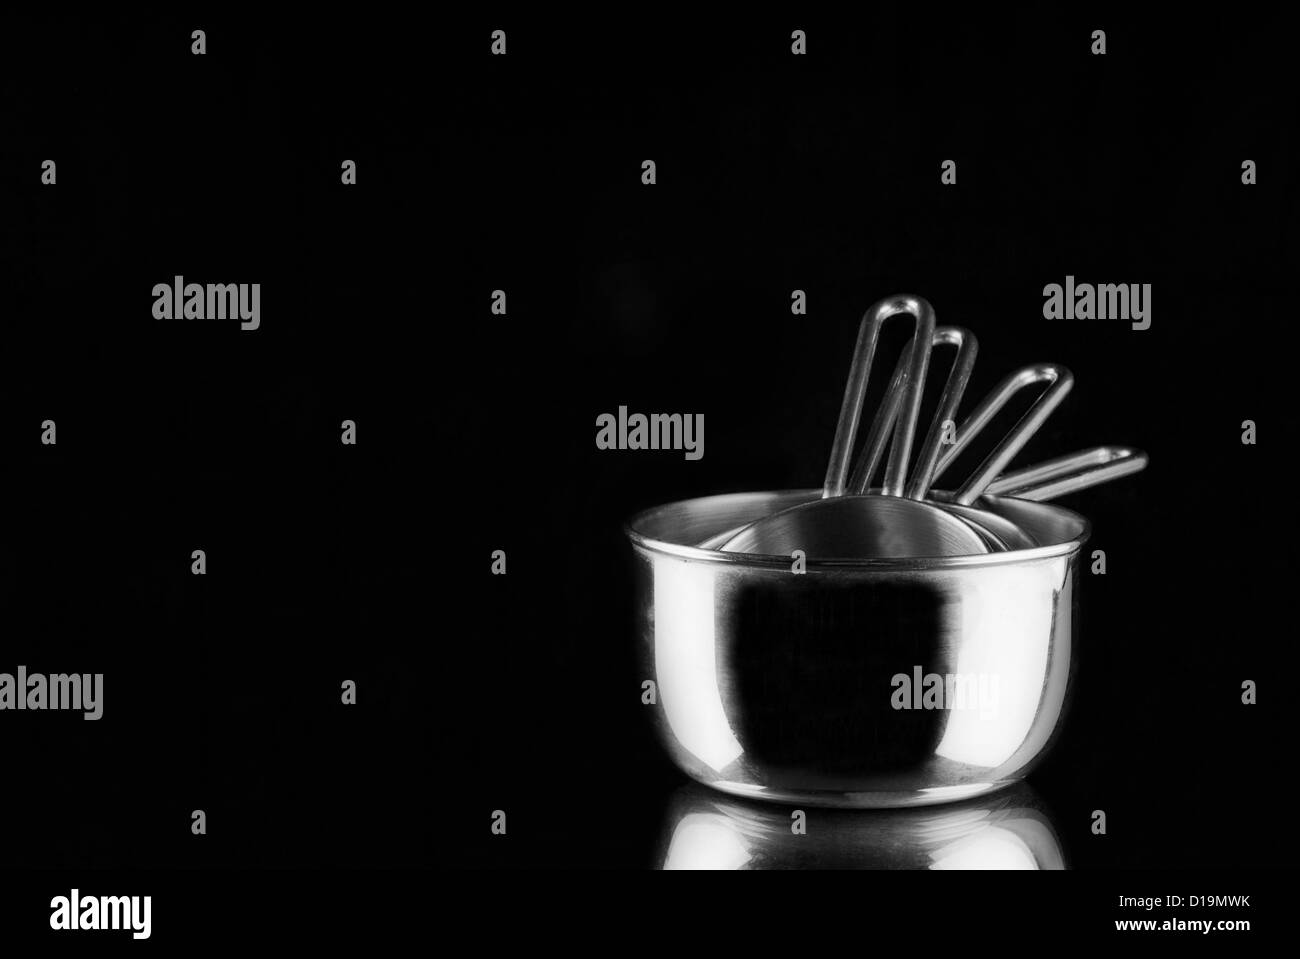 Stainless steel measuring cups on mirror with black background - Stock Image